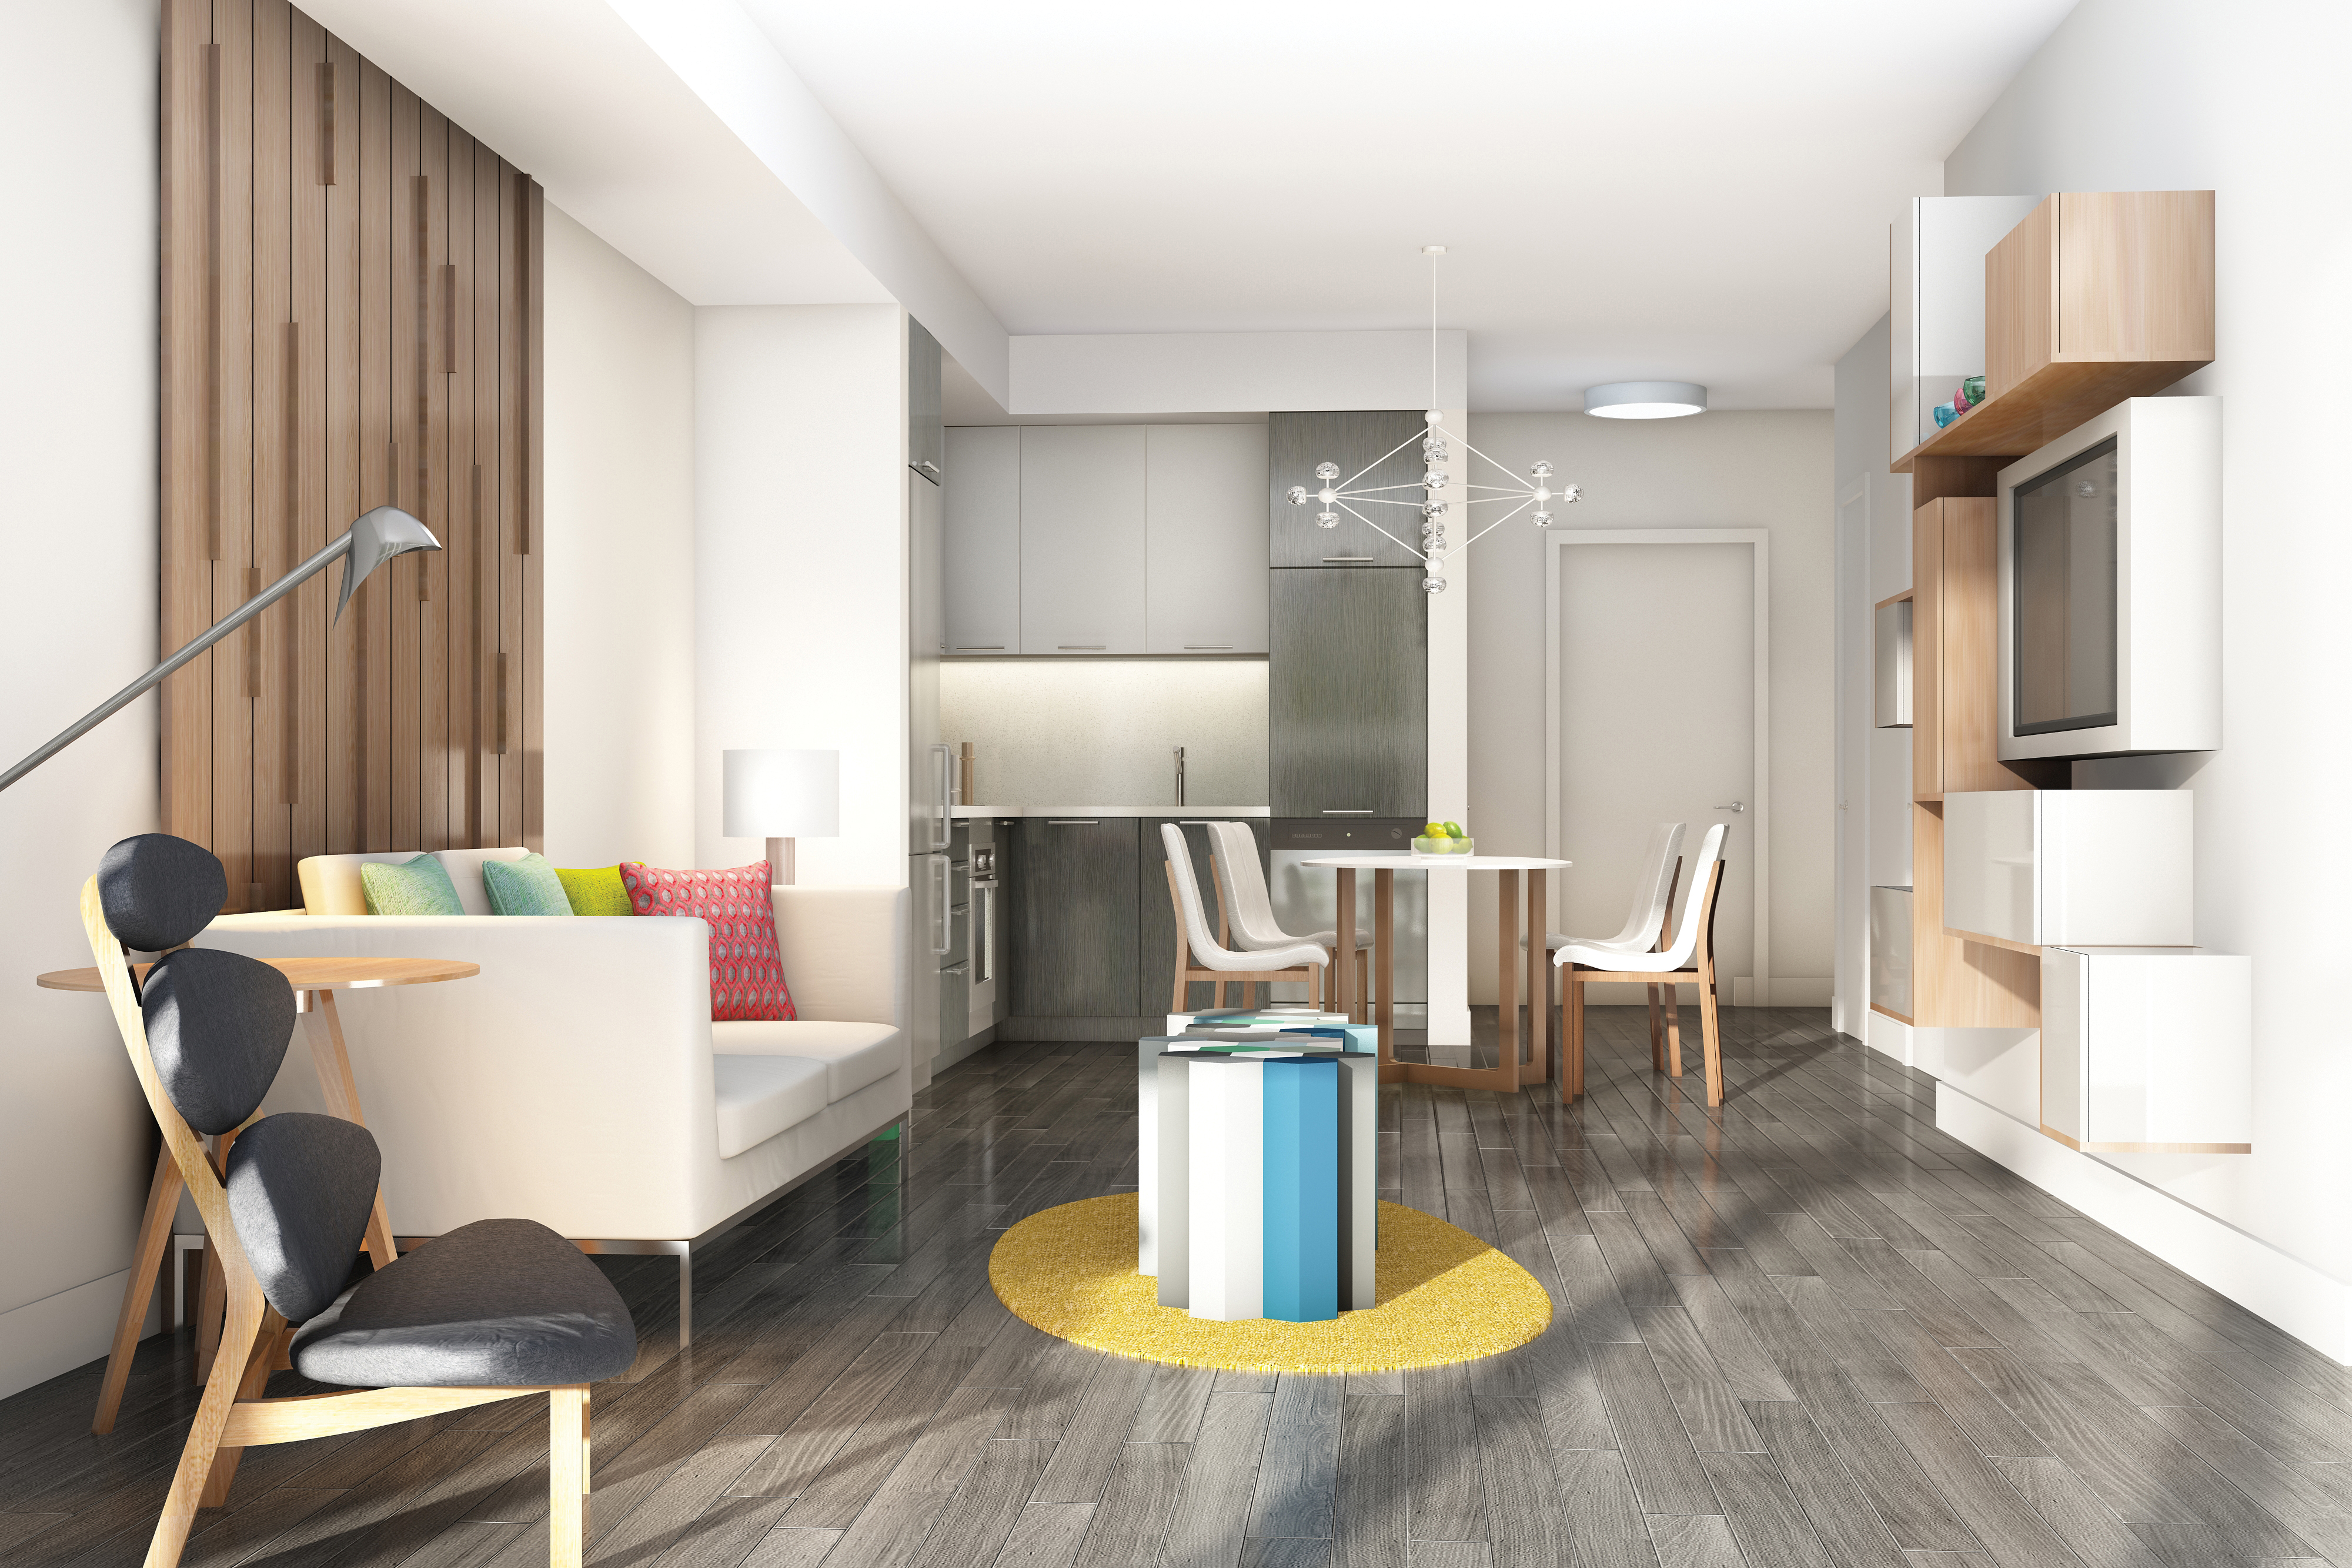 Adi's exclusive IntelliSpace design delivers open-concept living and entertaining areas to ensure living space, modern style, comfort and superior quality